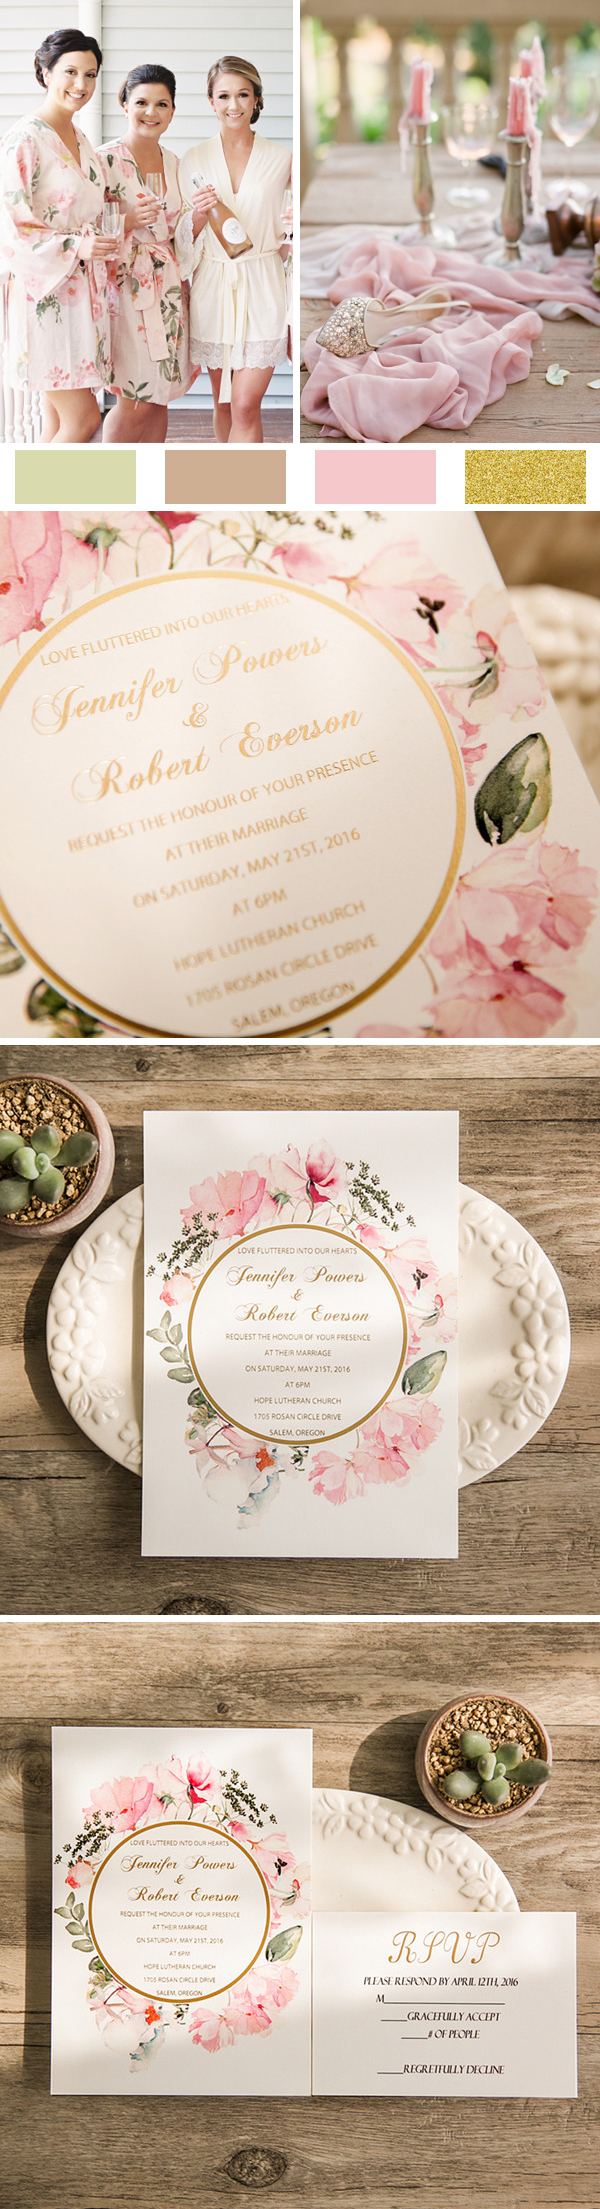 Romantic Boho Floral Blush and Gold Foil Stamped Wedding Invitations EWFI018